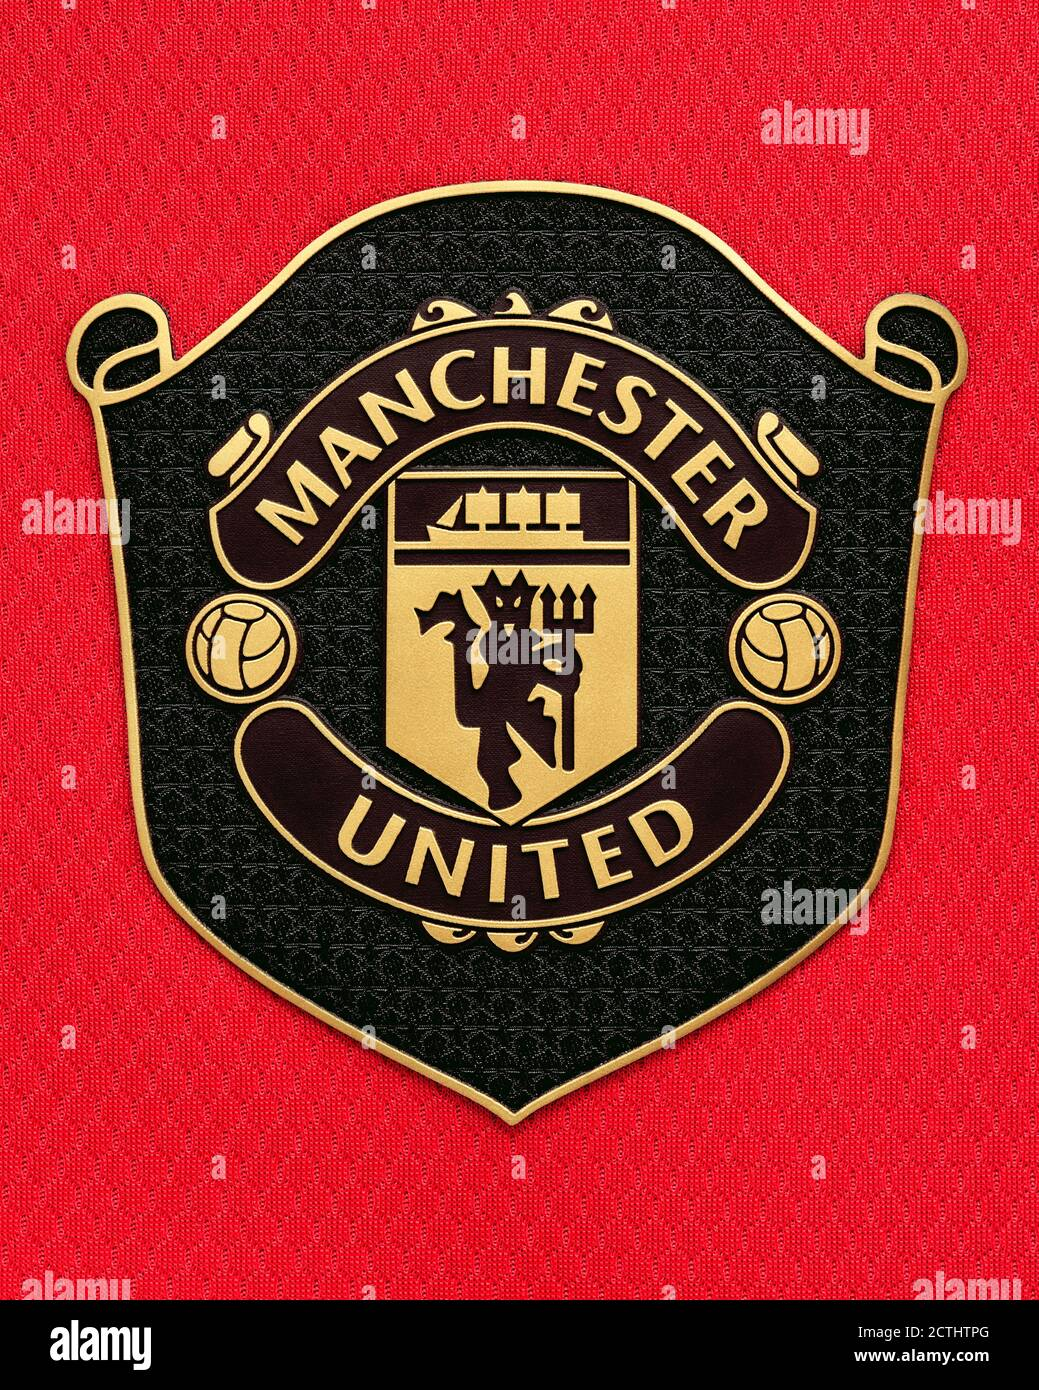 manchester united badge high resolution stock photography and images alamy https www alamy com manchester united badge on a football shirt close up image376562104 html